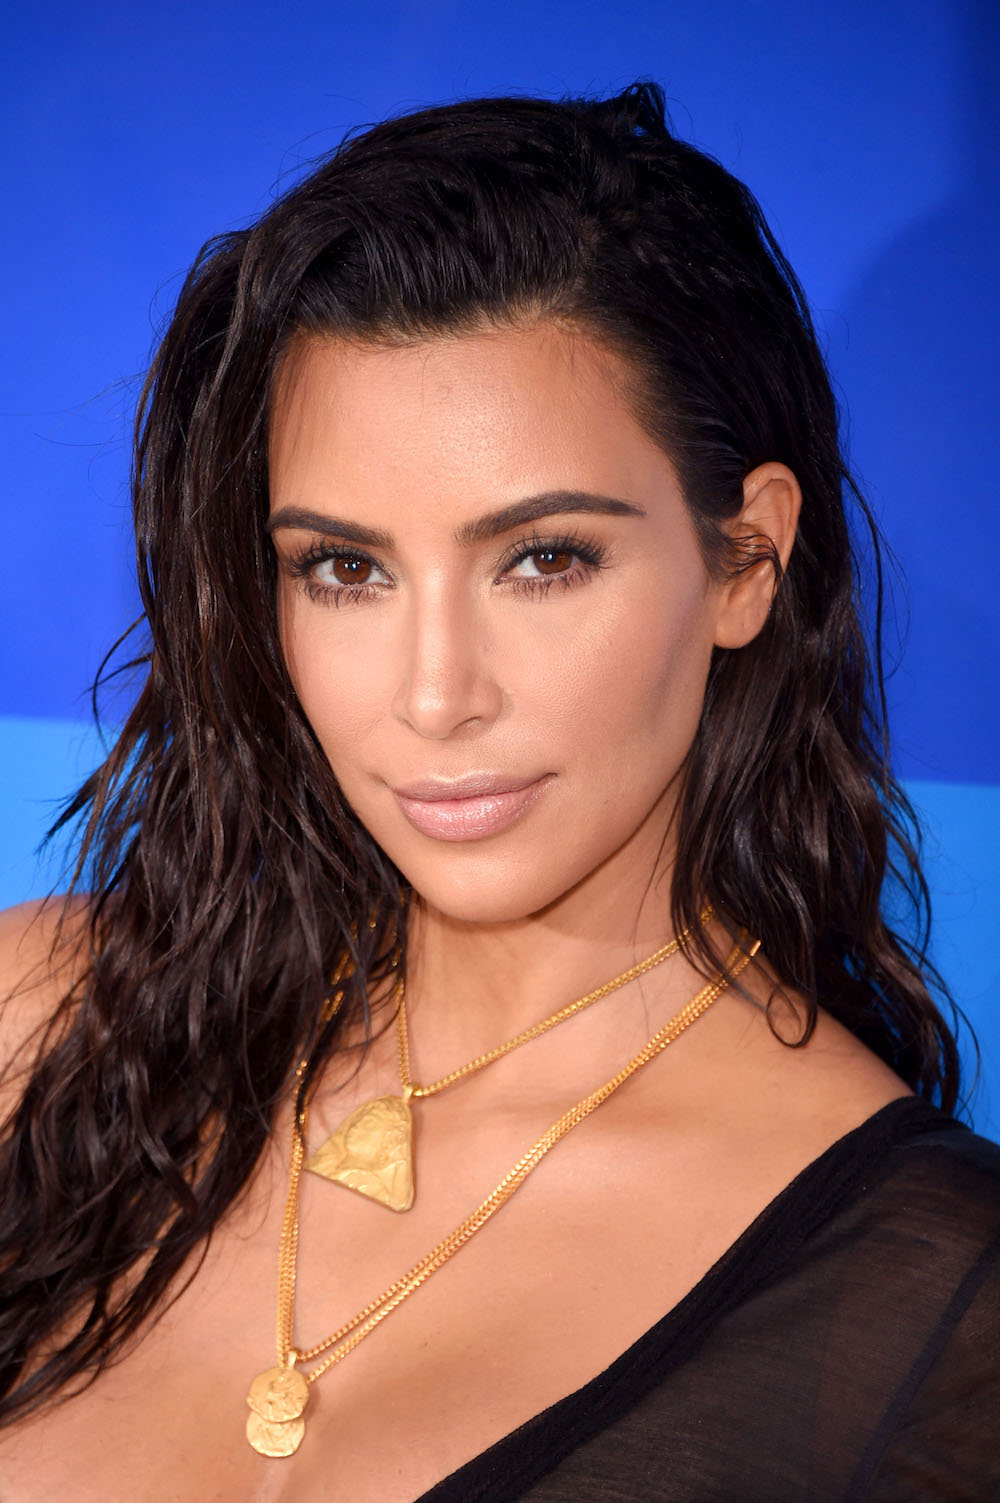 NEW YORK, NY - AUGUST 28: Kim Kardashian attends the 2016 MTV Video Music Awards at Madison Square Garden on August 28, 2016 in New York City. (Photo by Dimitrios Kambouris/WireImage)